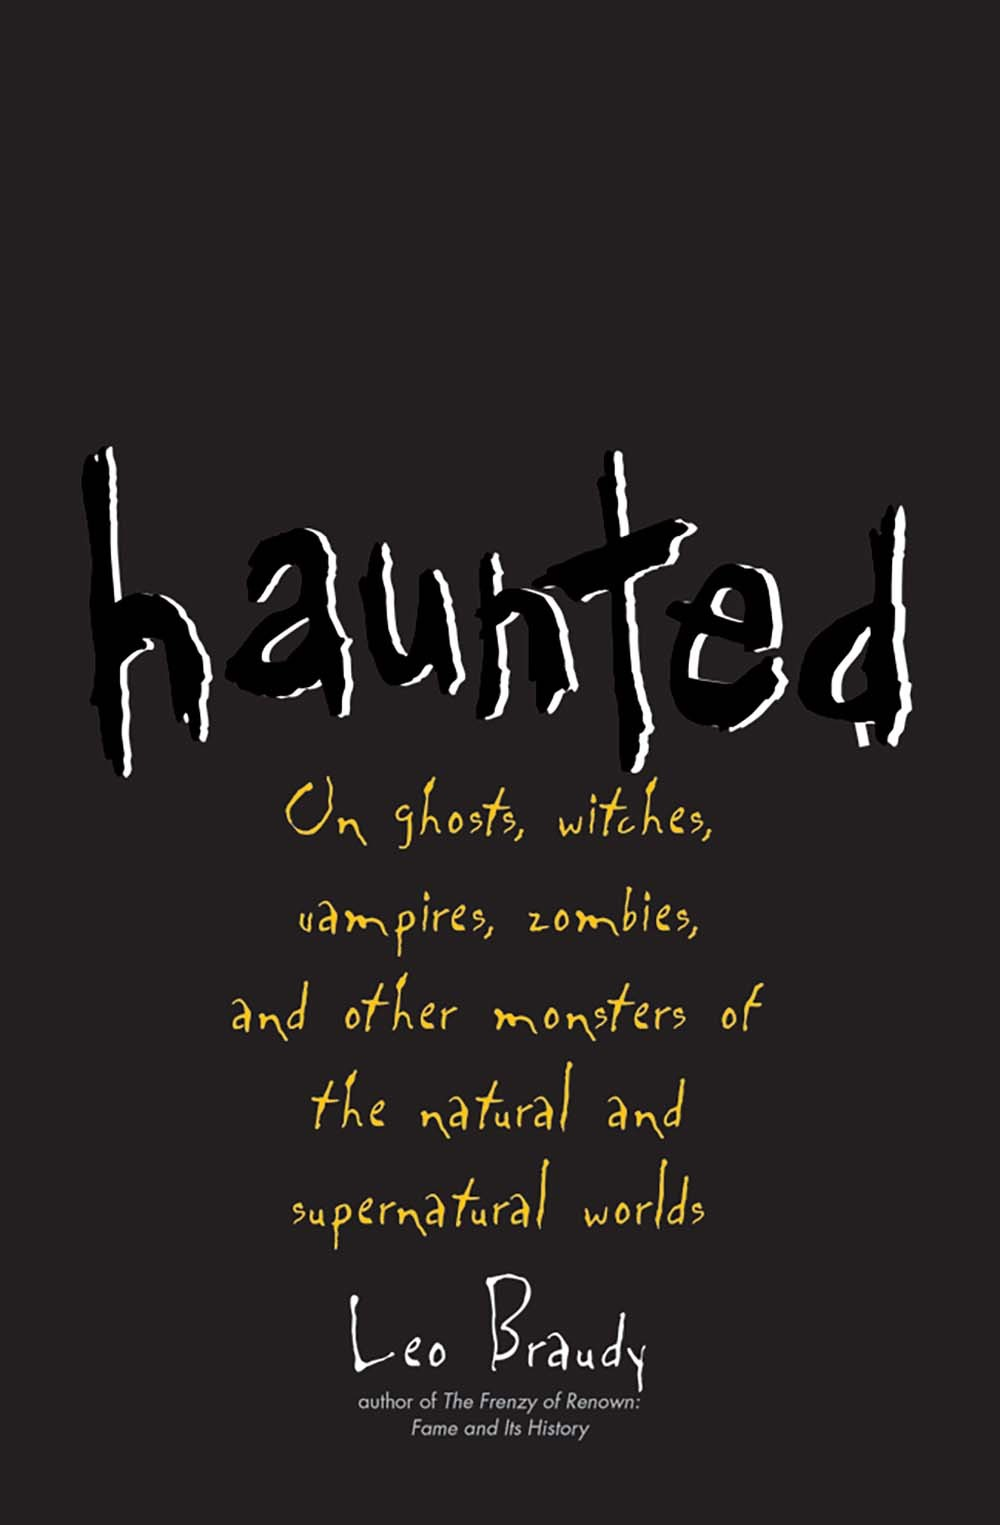 Haunted: On Ghosts, Witches, Vampires, Zombies, and Other